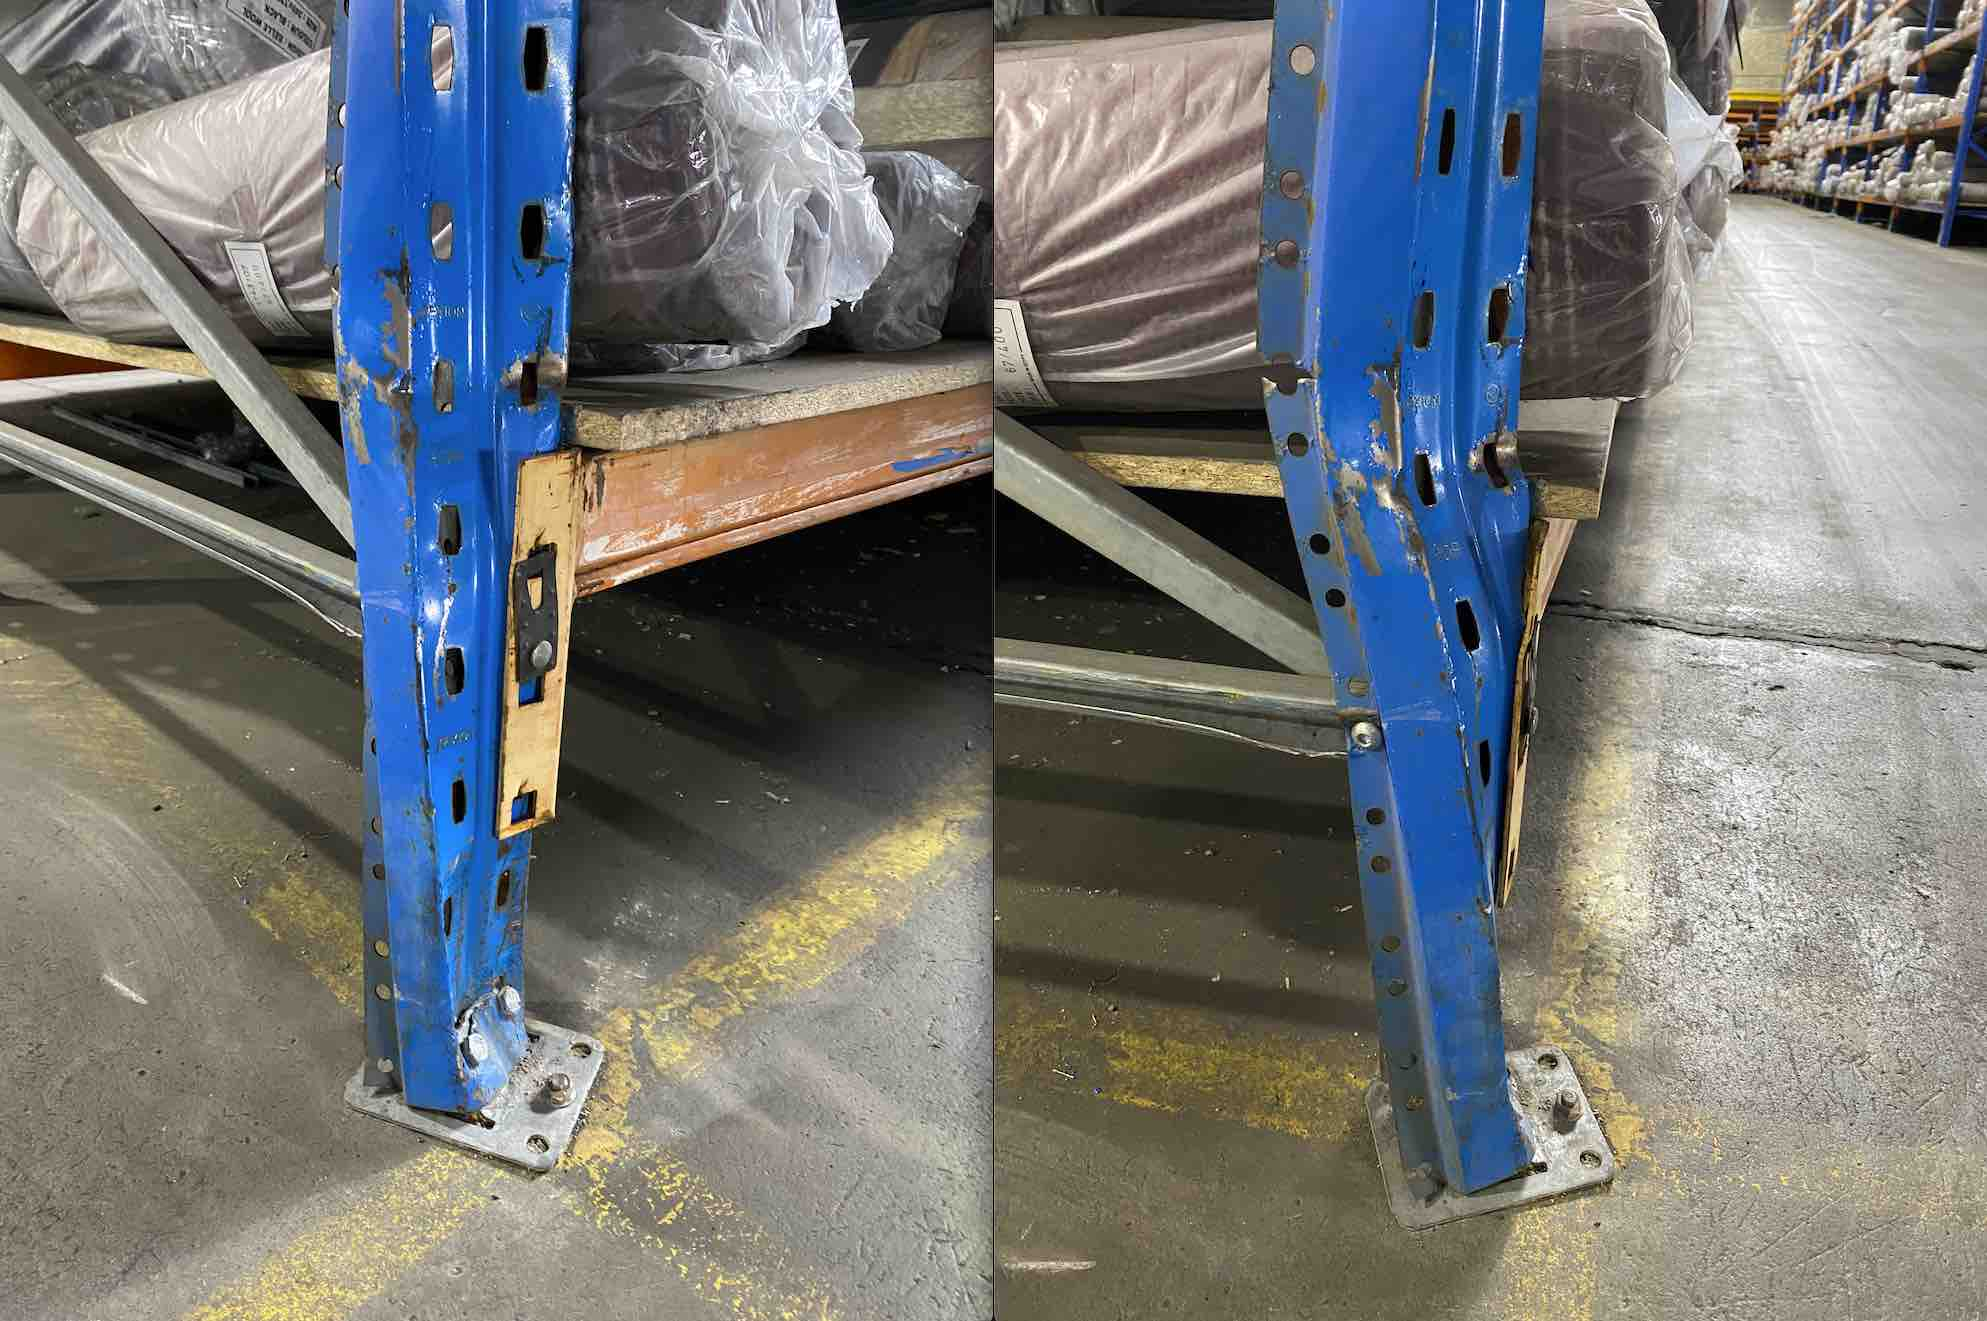 Pallet Racking Parts and Accessories Repairs and Maintenance